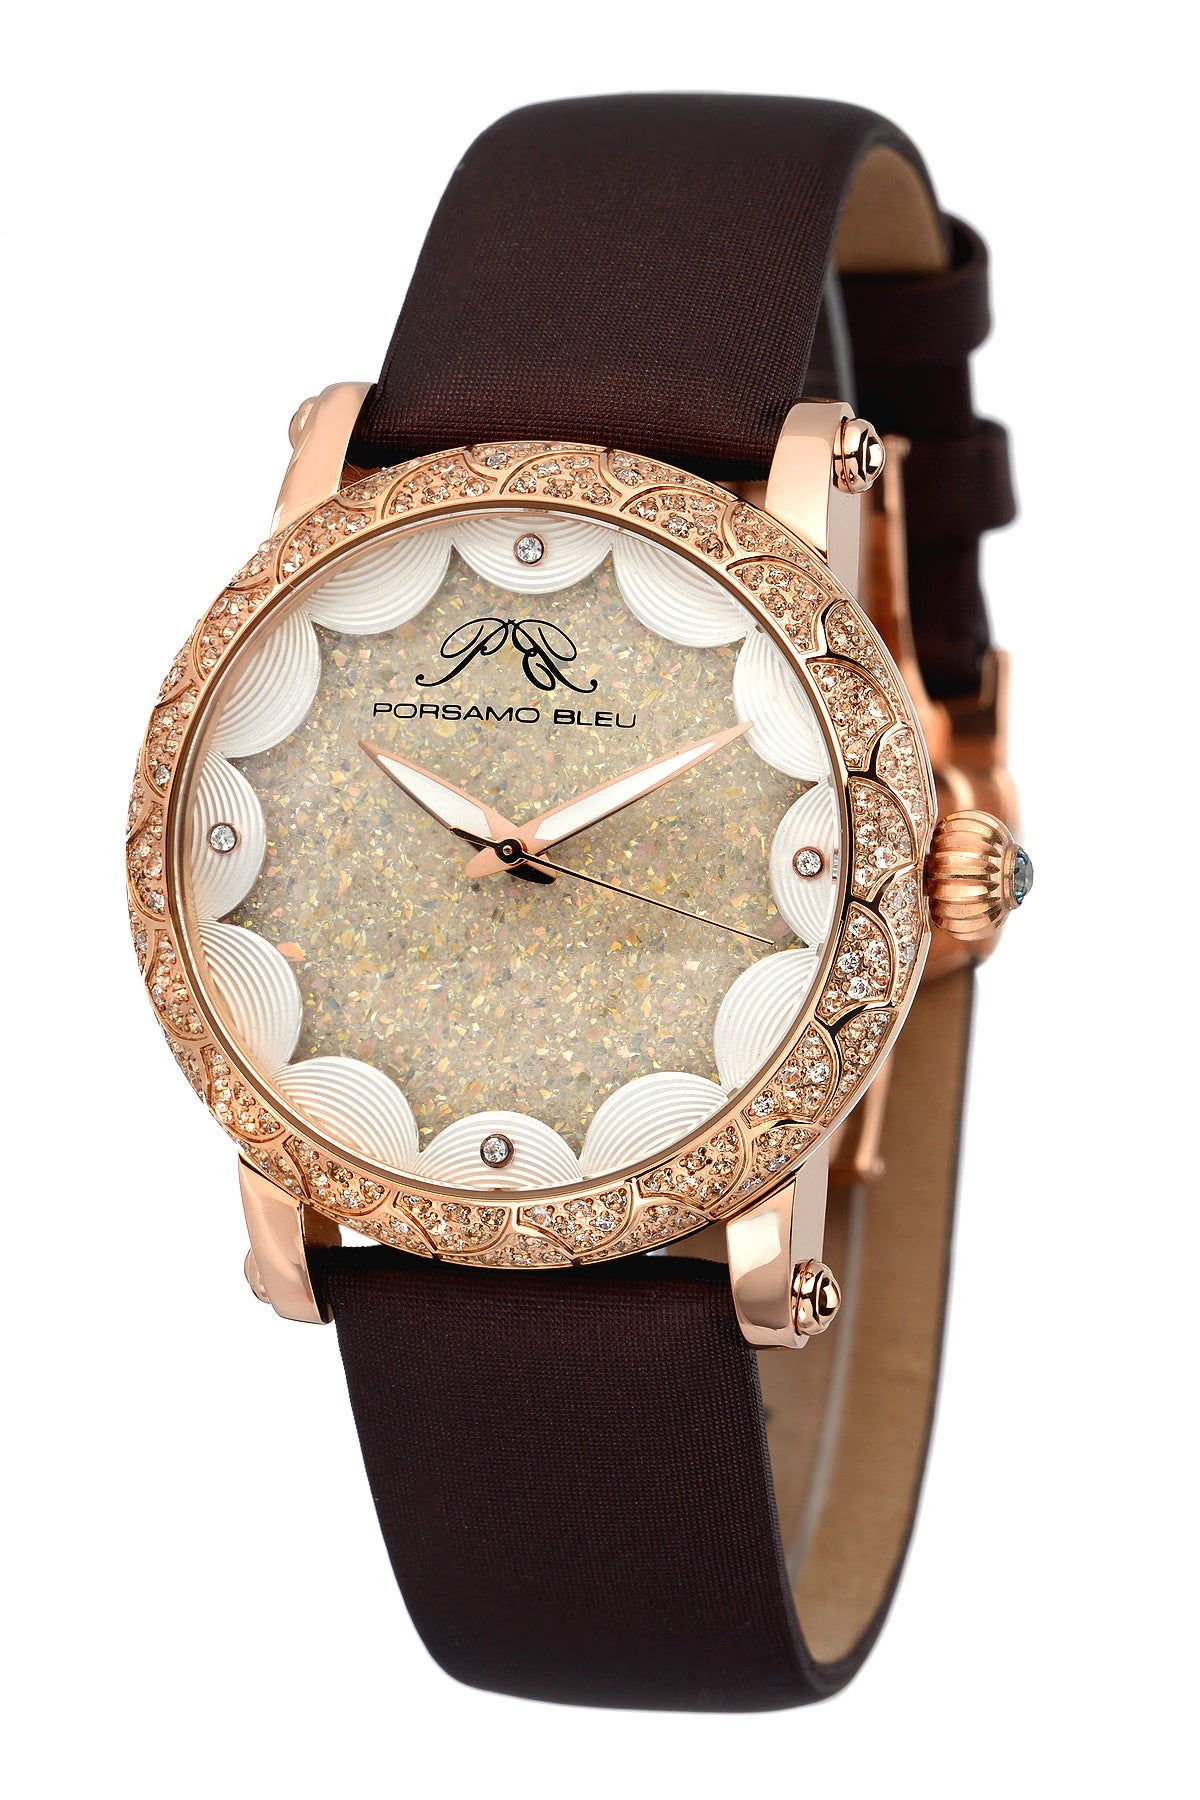 Porsamo Bleu Genevieve luxury topaz women's watch satin leather watch, rose, brown 681CGEL